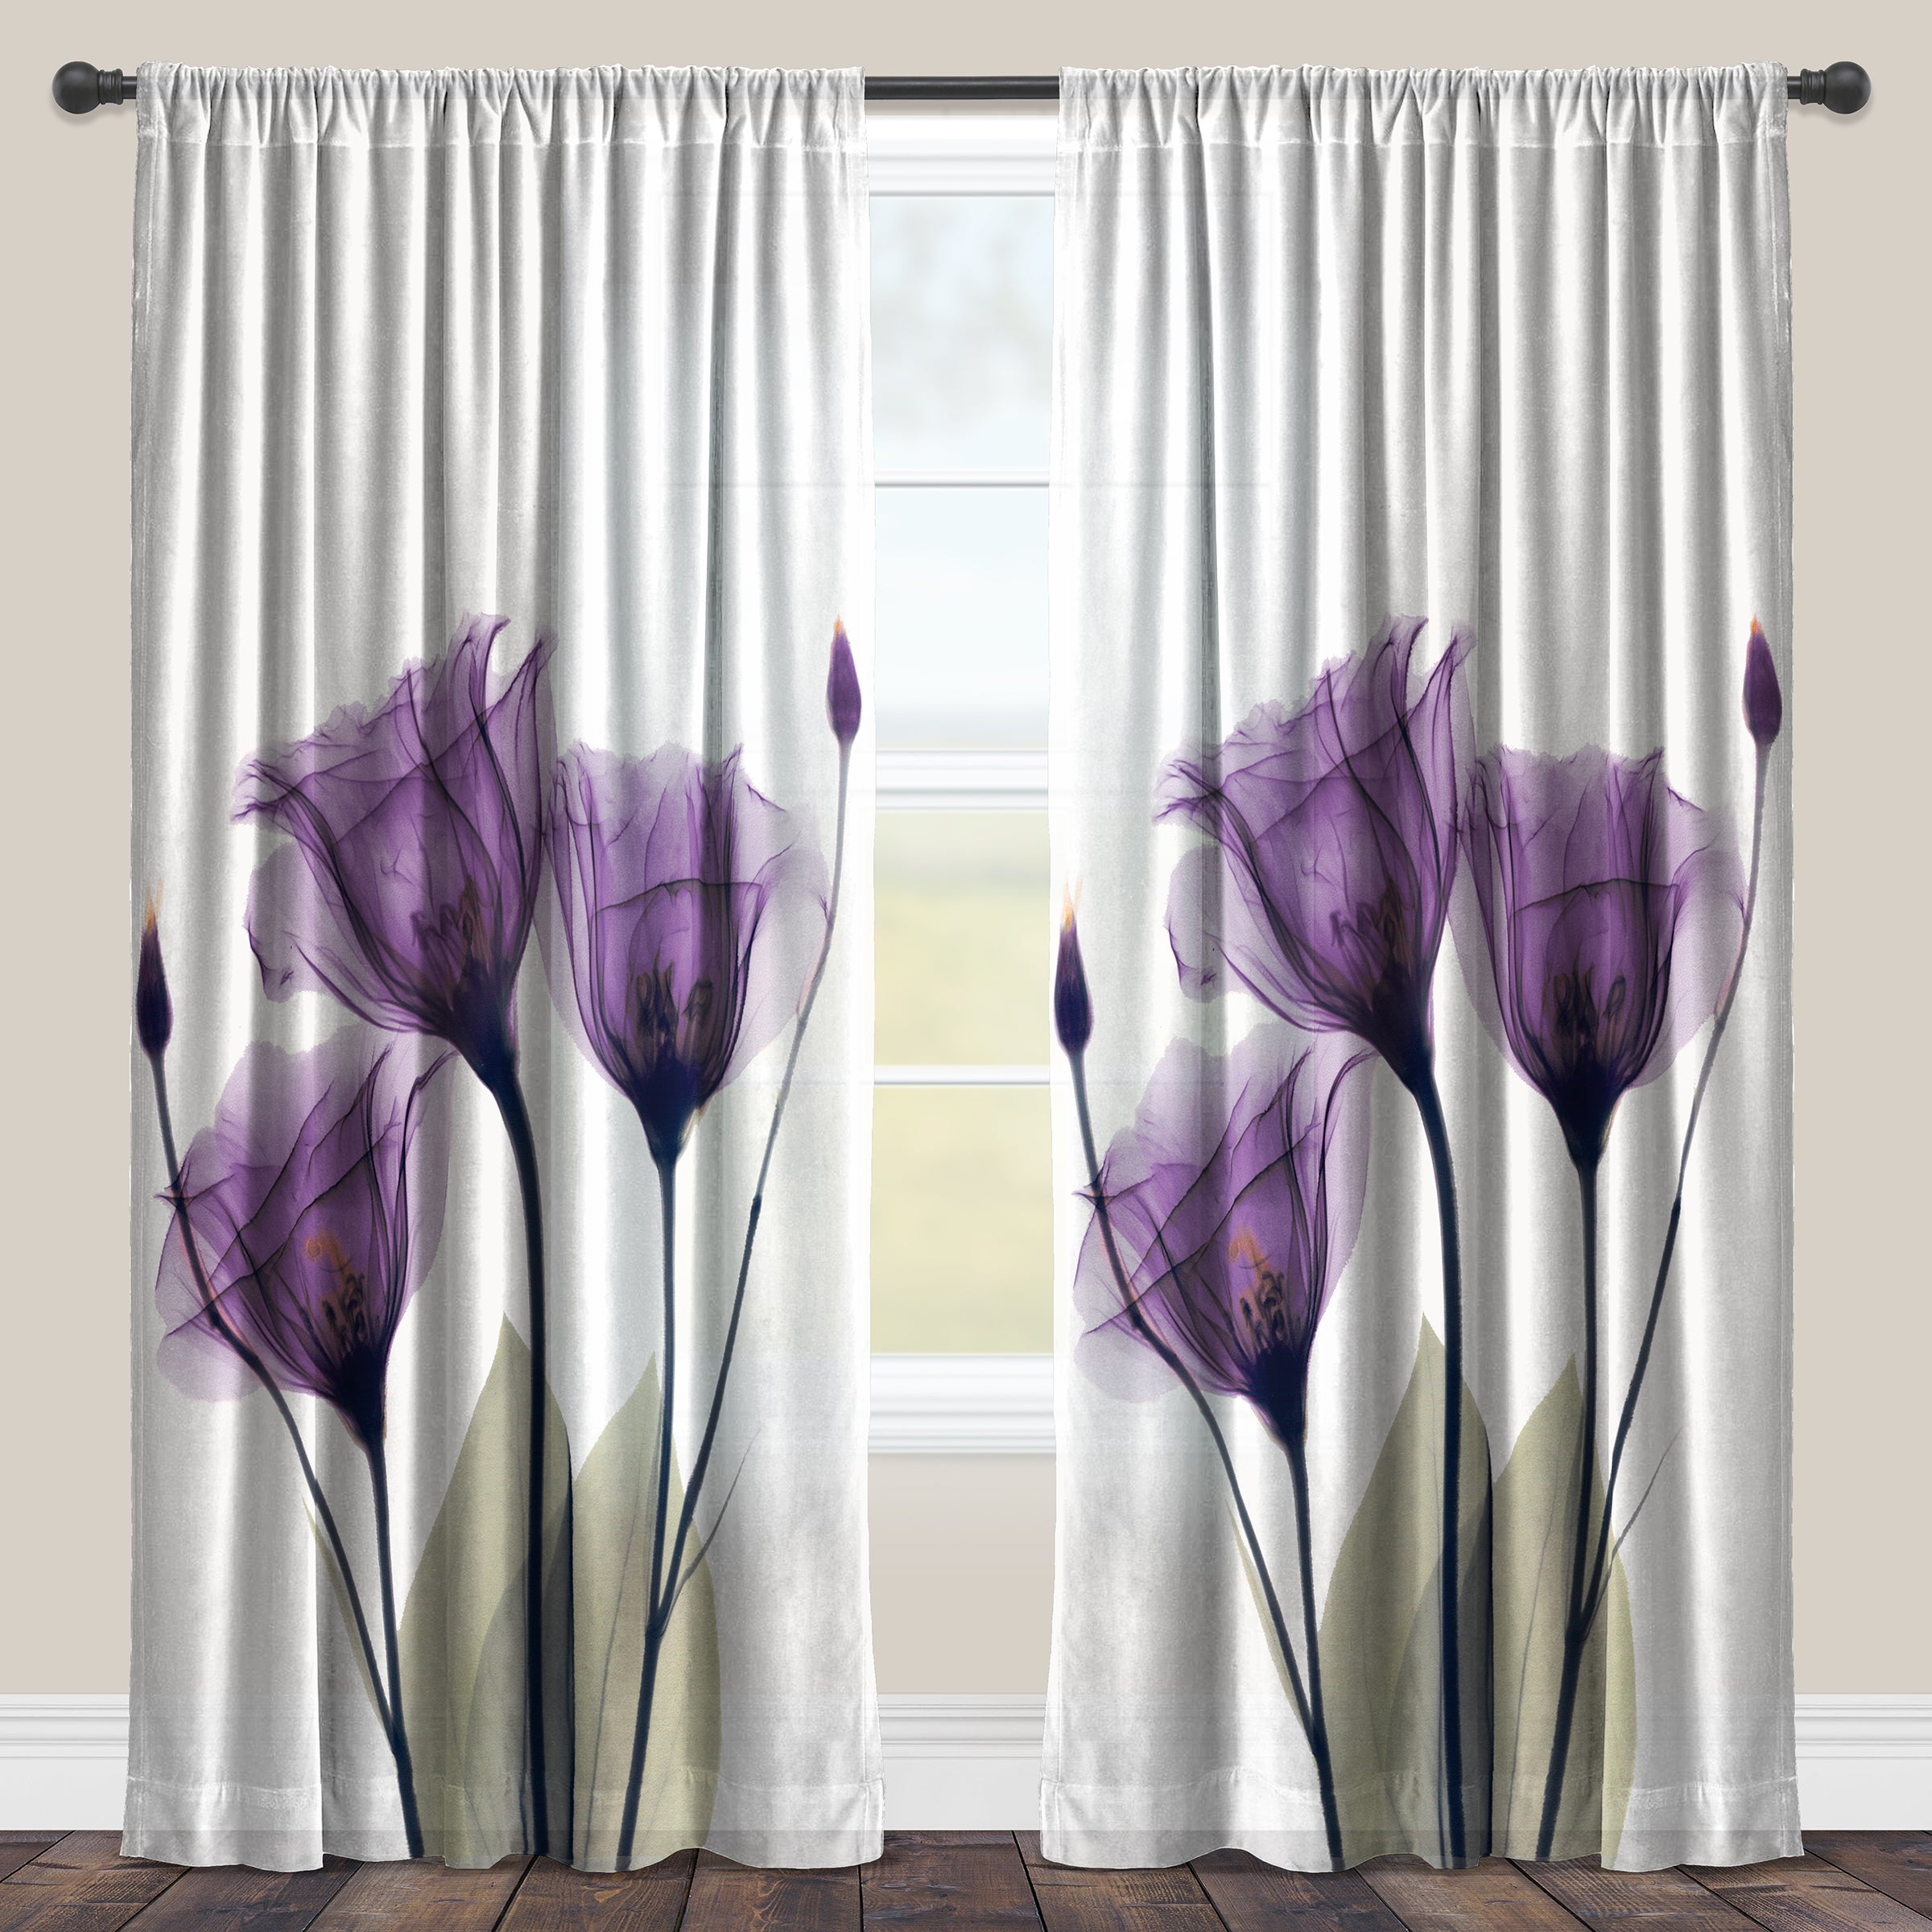 Laural Home Lavender Floral X Ray Sheer Curtain Panel Single Panel On Sale Overstock 11664477